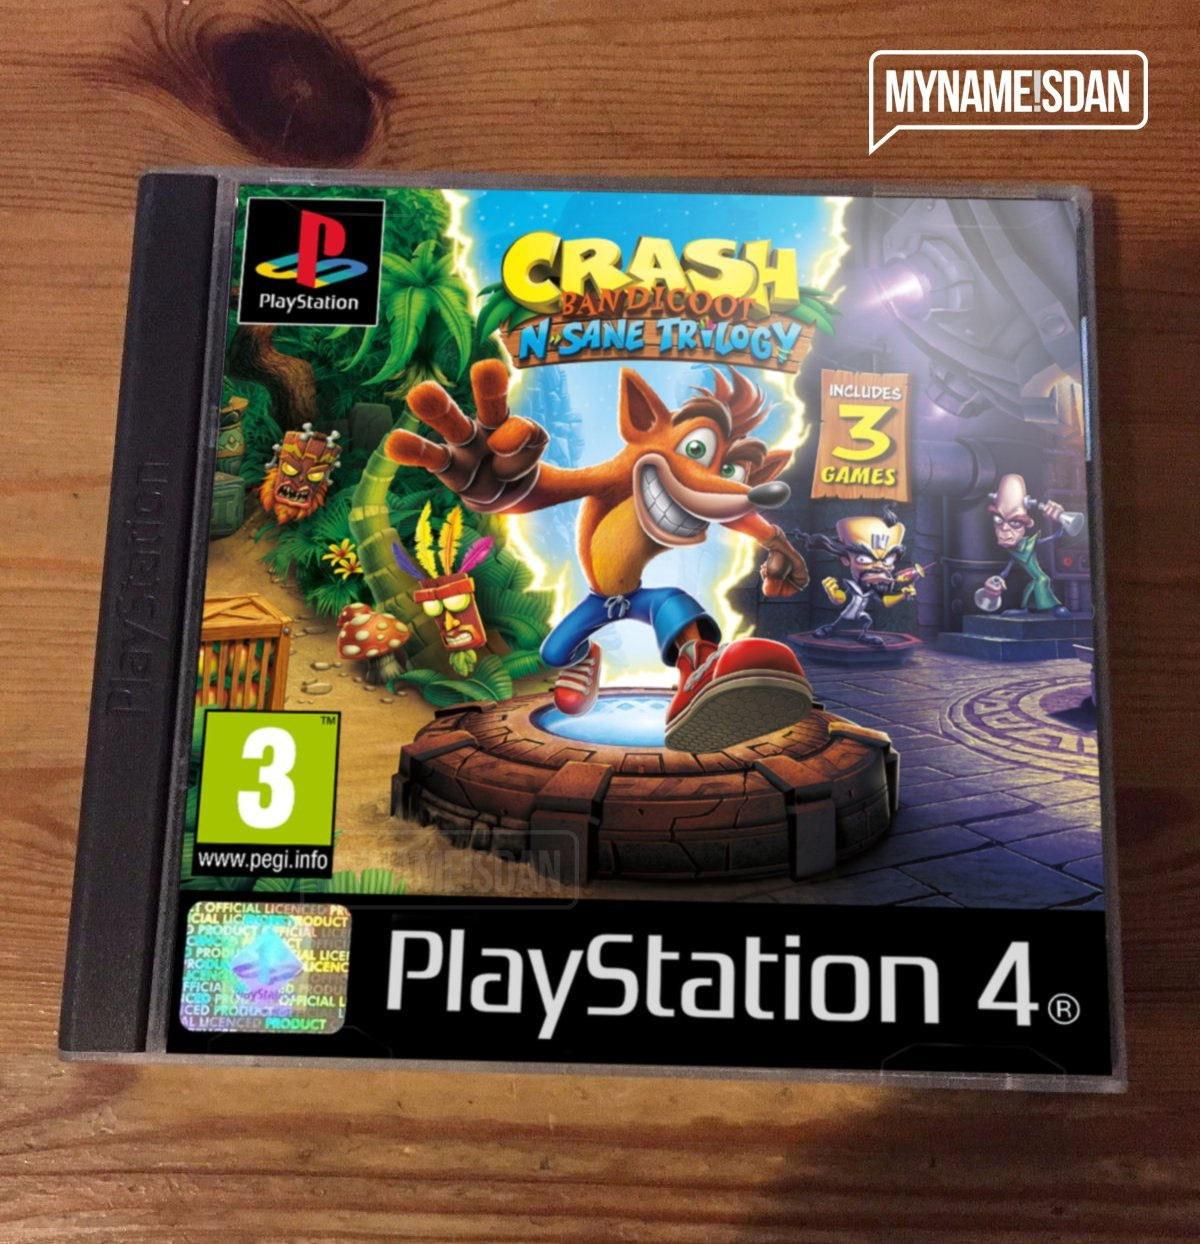 Playstation 1 Games On Ps4 : This is what crash bandicoot ps s case should look like